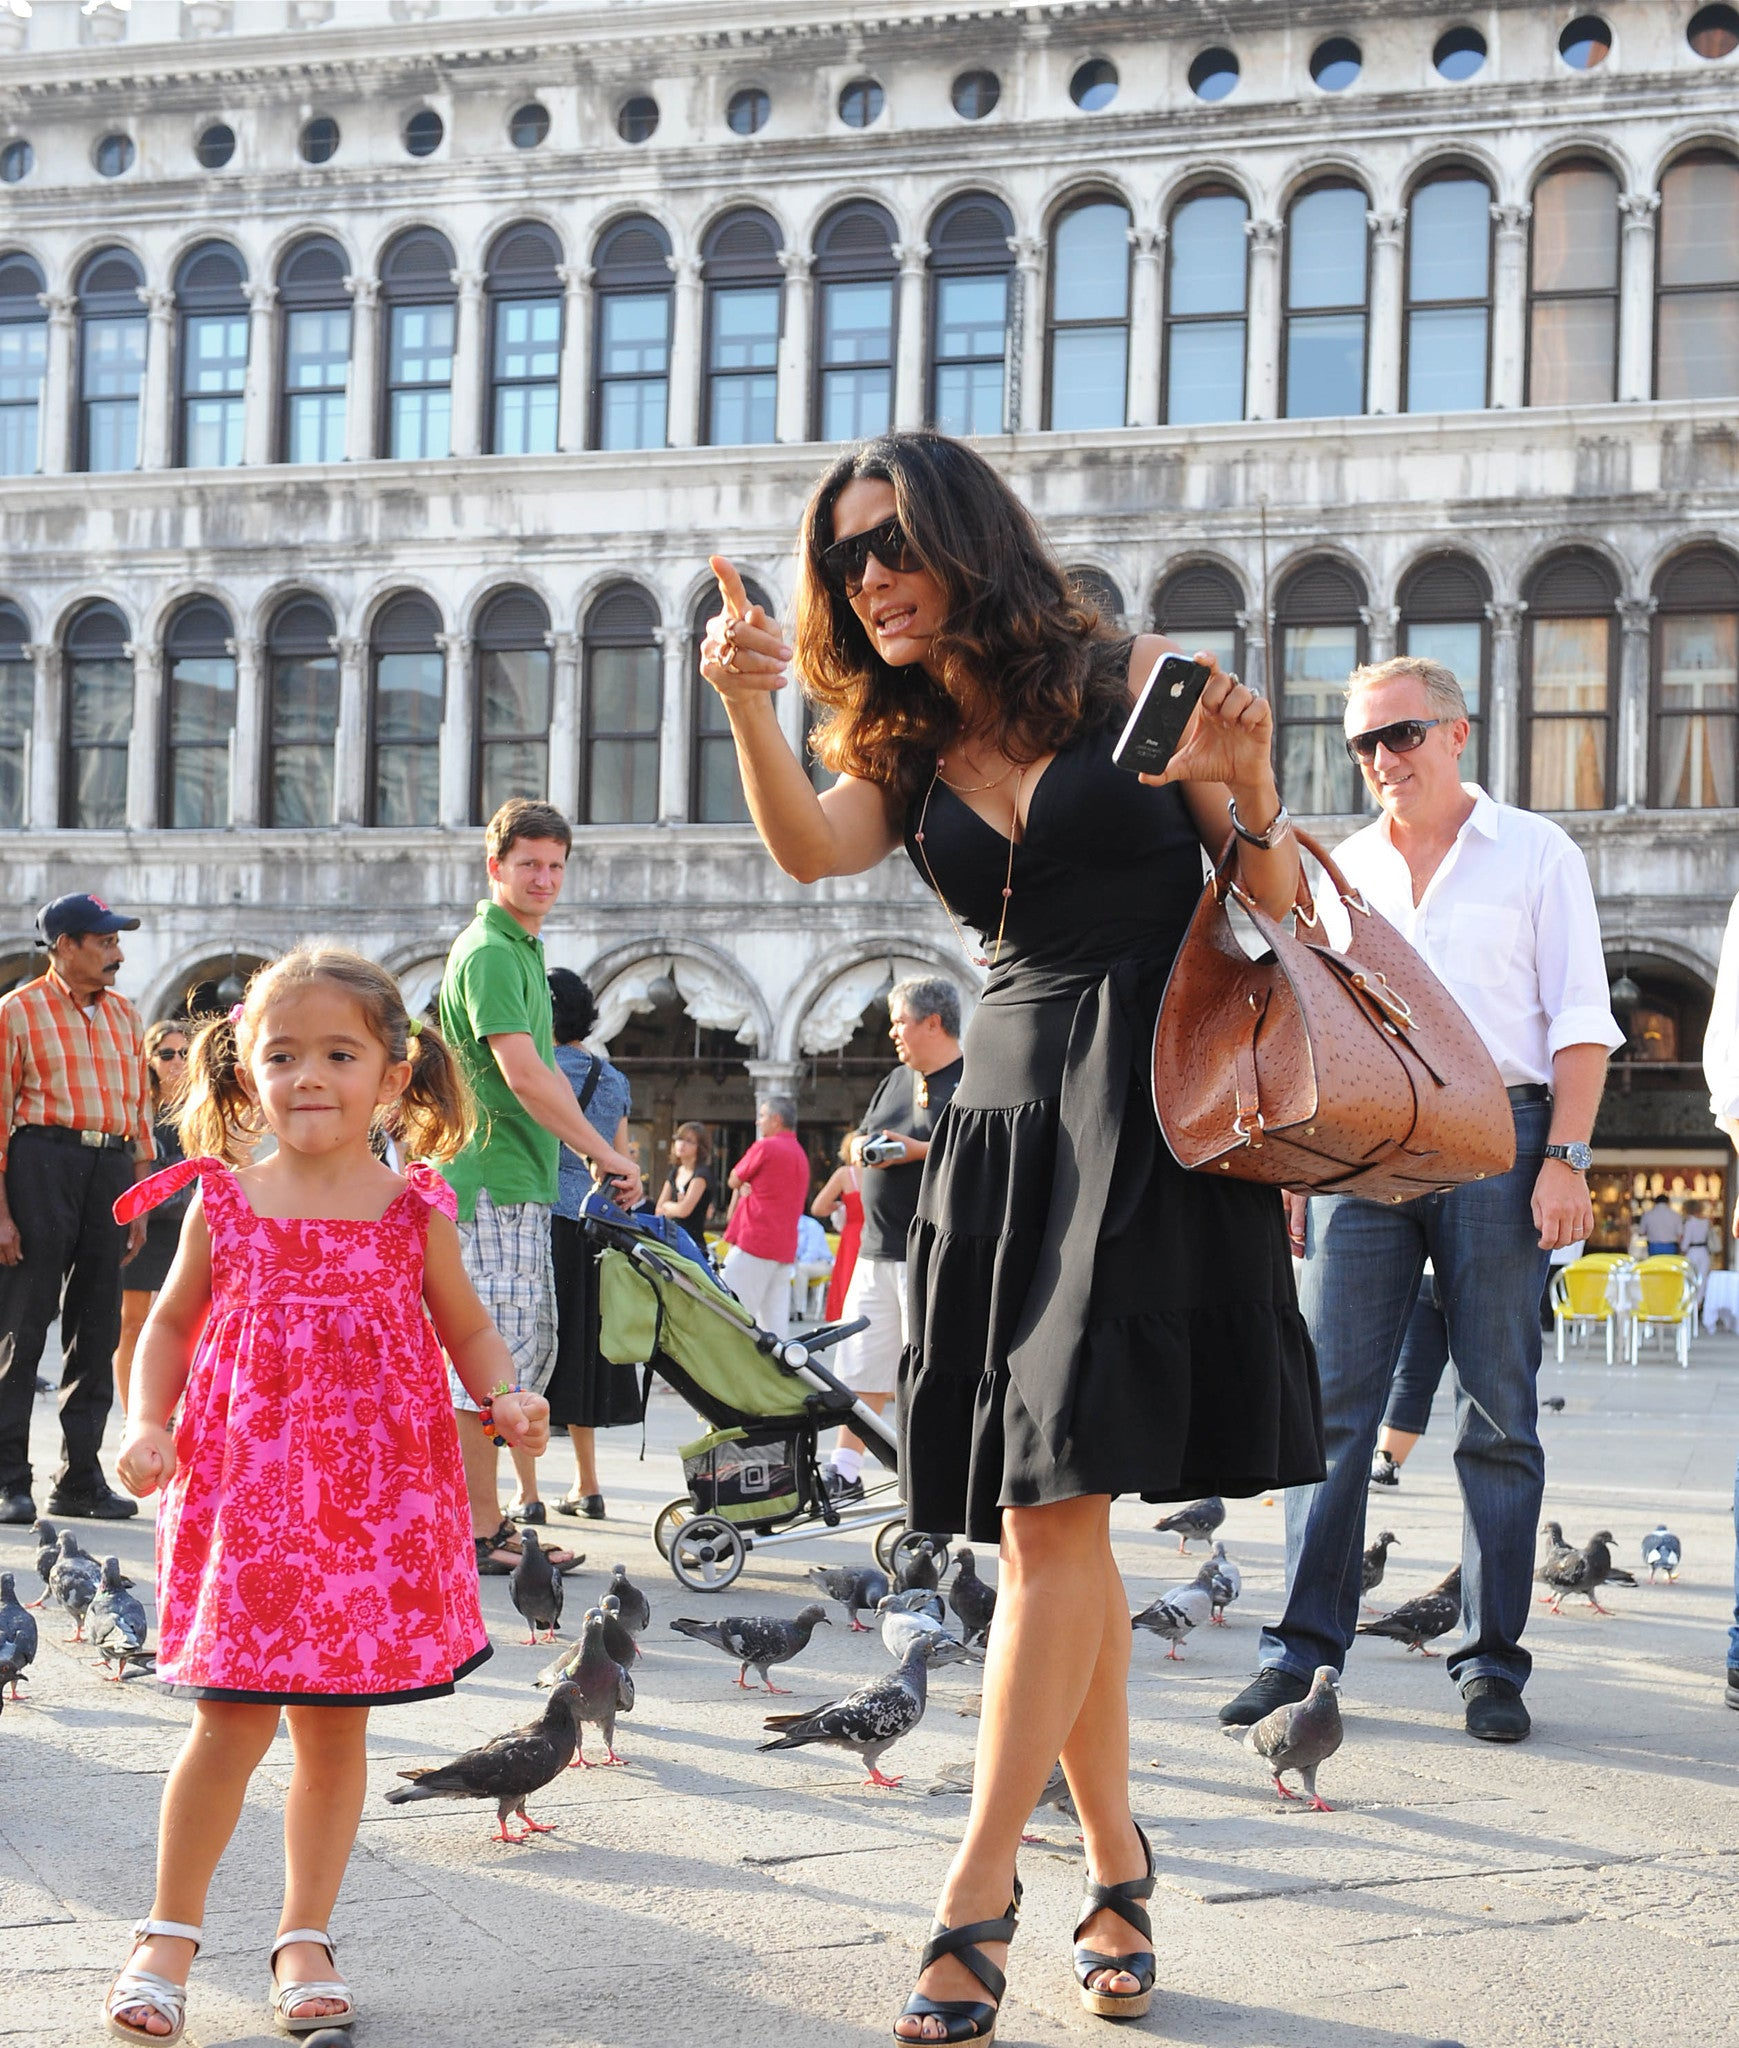 Salma Hayek with daughter Valentina Paloma Pinault in Venice wearing Redfish Kids #Stmarkssquare #venice #salmahayak #valentinahayak #francoishenripinault #celebritykids #Valentinapalomapinault #Stmarkssquare #venice #salmahayak #valentinahayak #francoishenripinault #celebritykids #Valentinapalomapinault